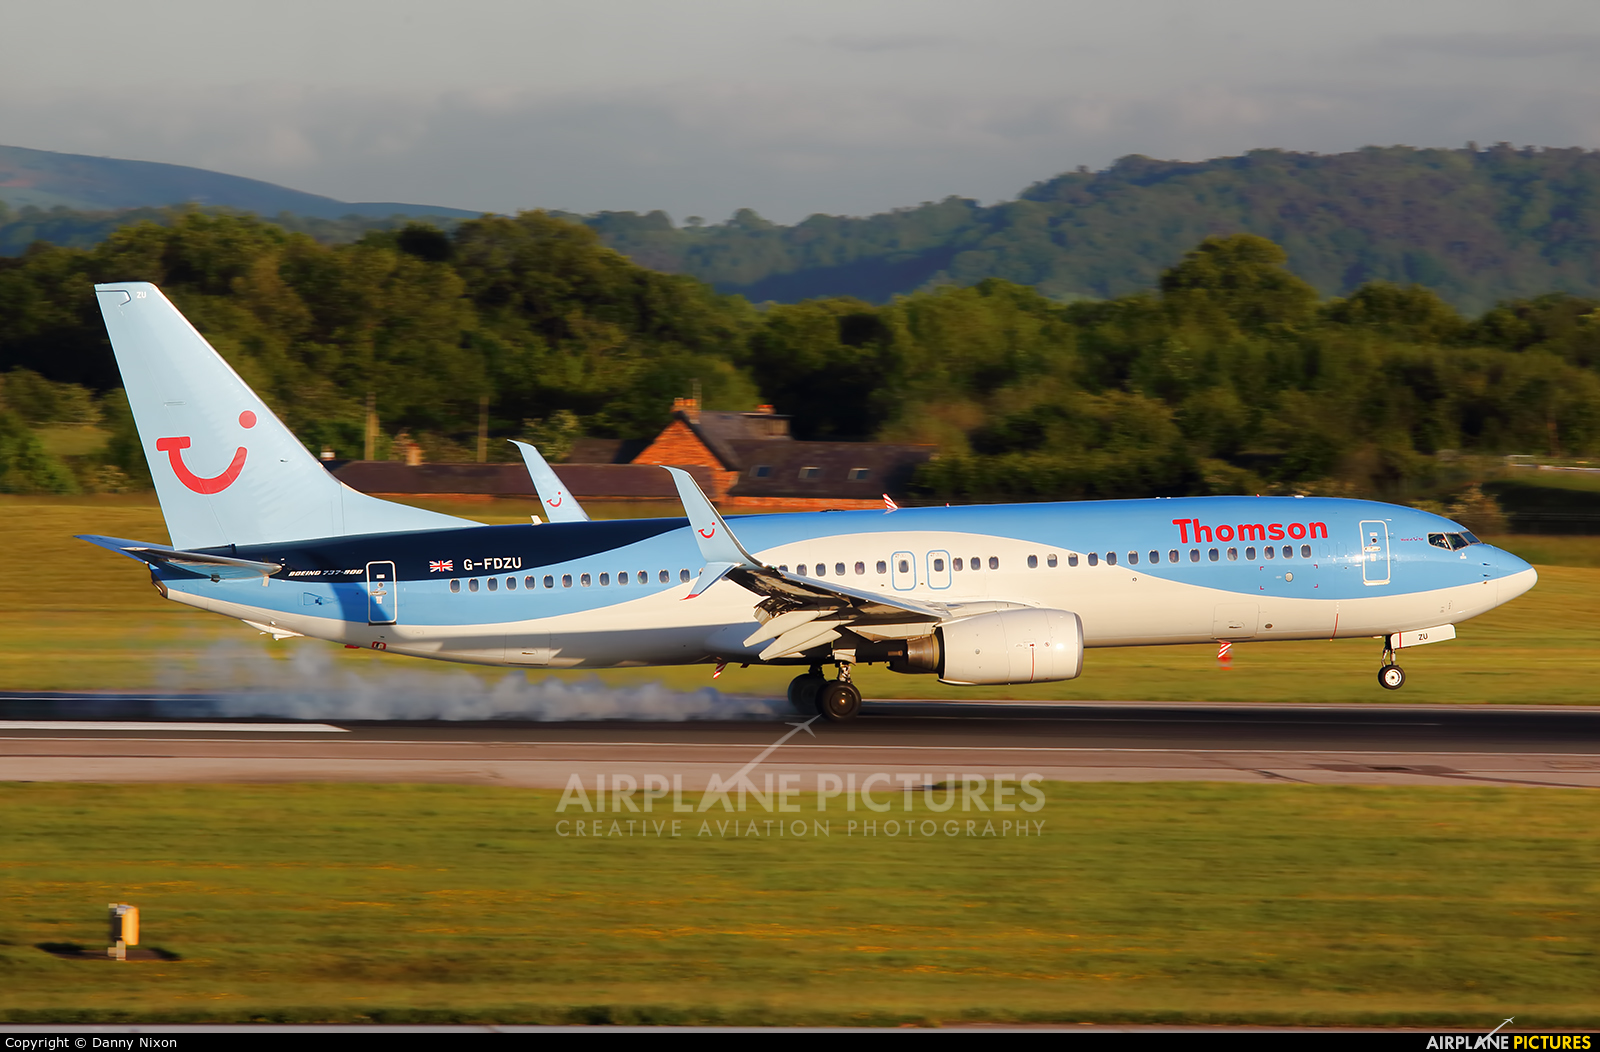 Thomson/Thomsonfly G-FDZU aircraft at Manchester